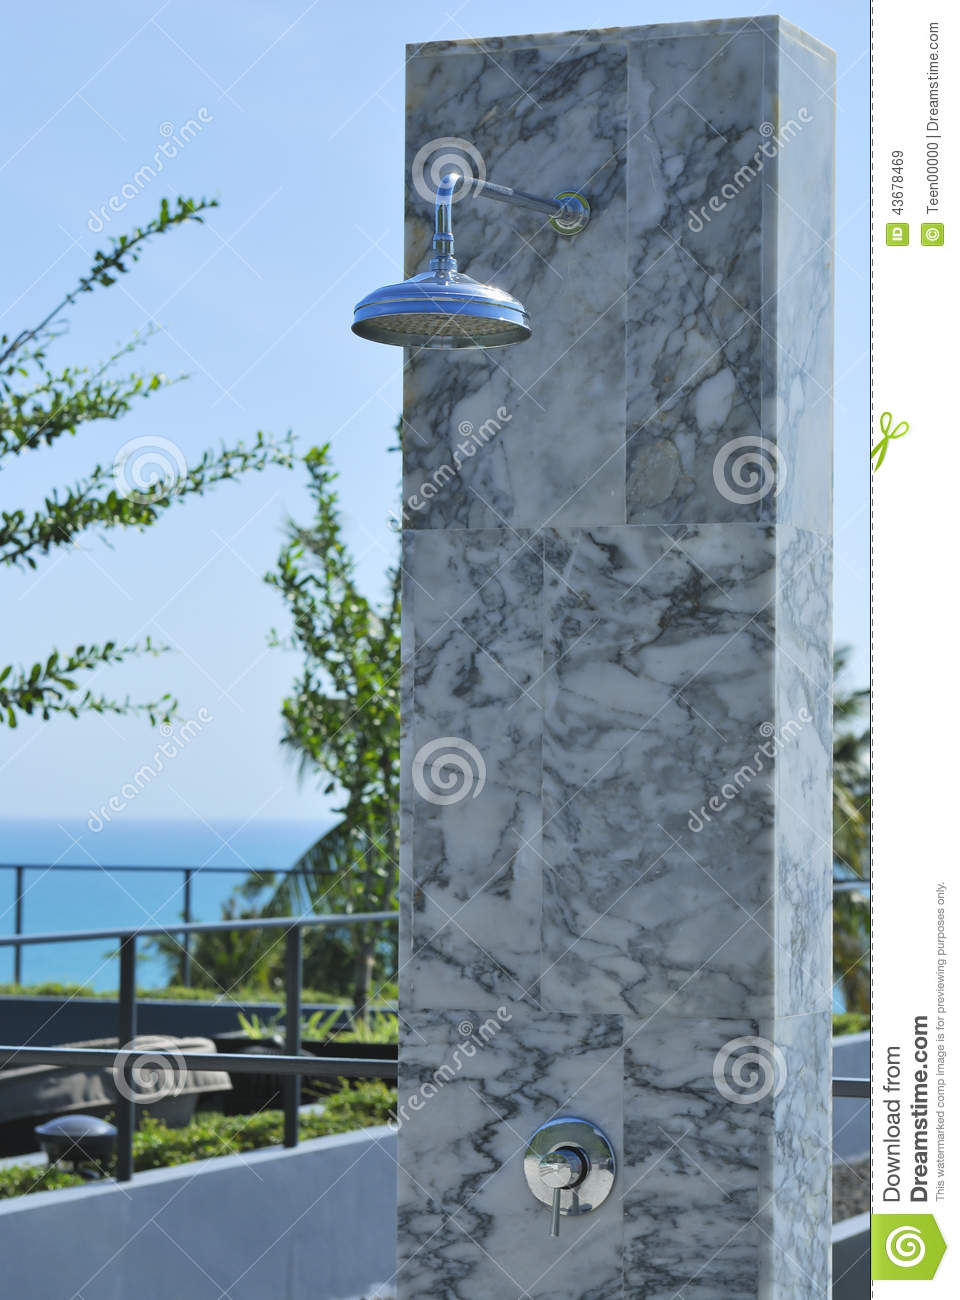 Outdoor Shower At Swimming Pool And Beach Stock Image - Image of ...